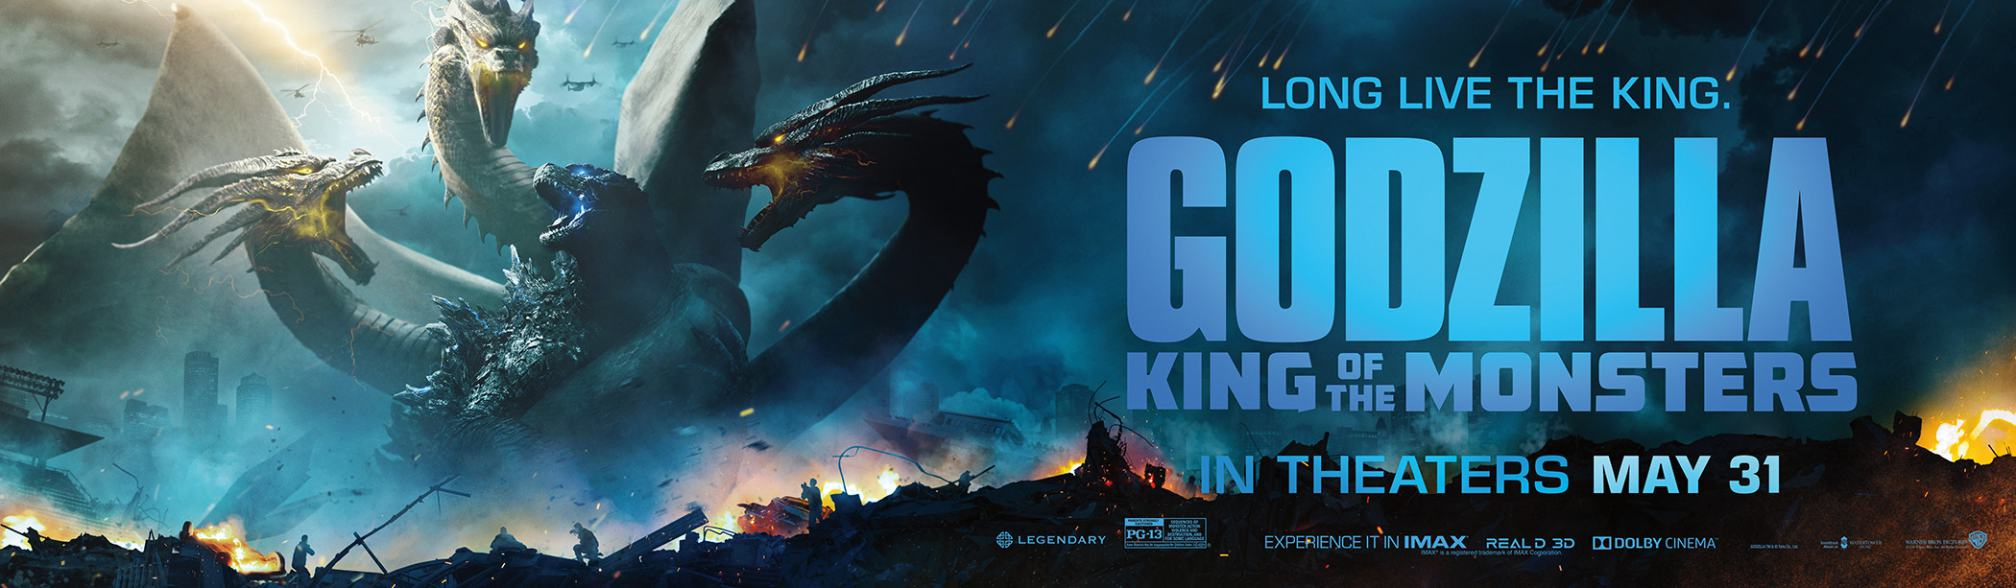 Godzilla: King of the Monsters Poster #11